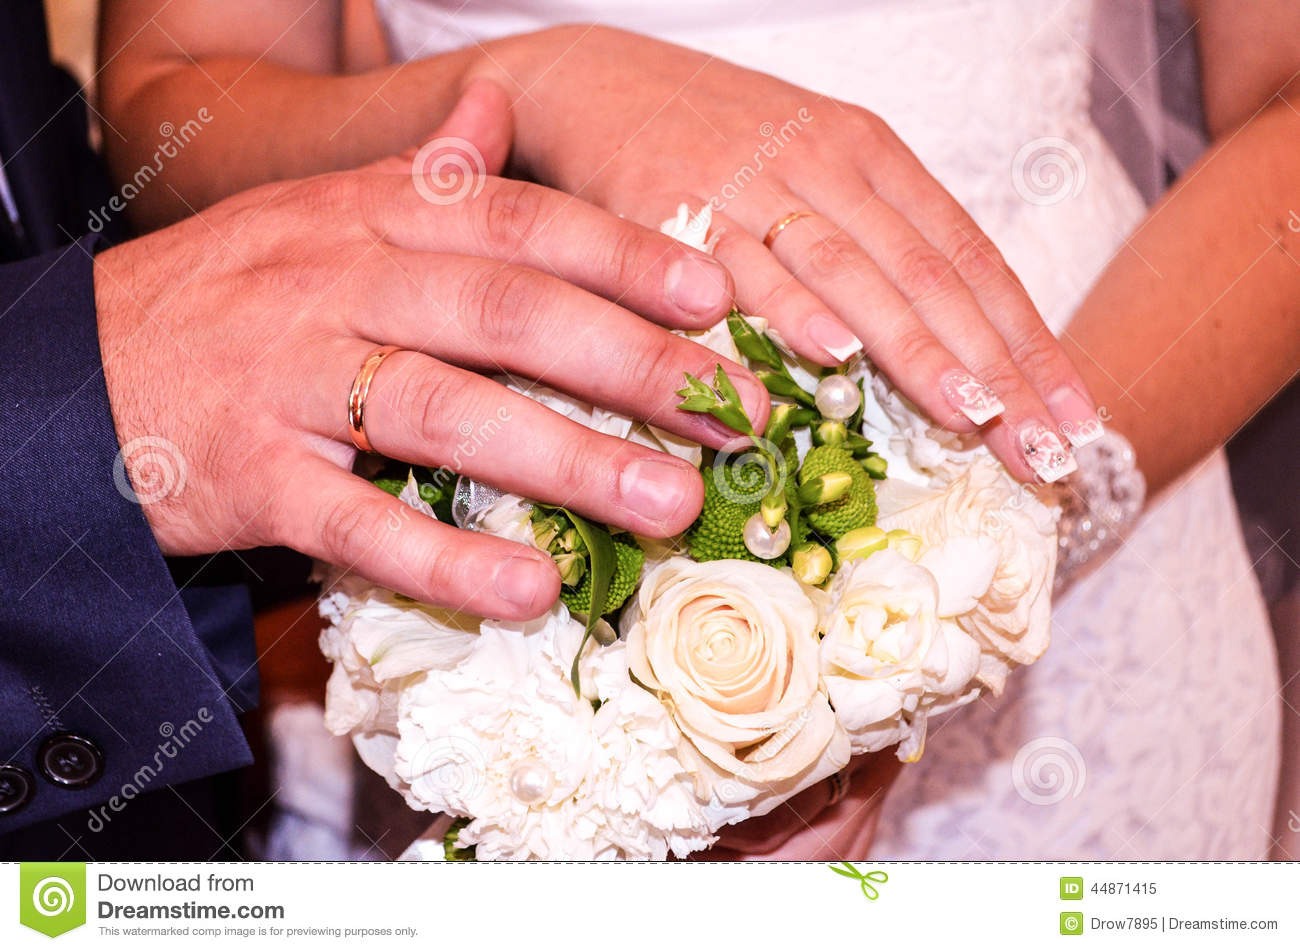 Wedding rings stock image. Image of white, bride, невеста - 44871415